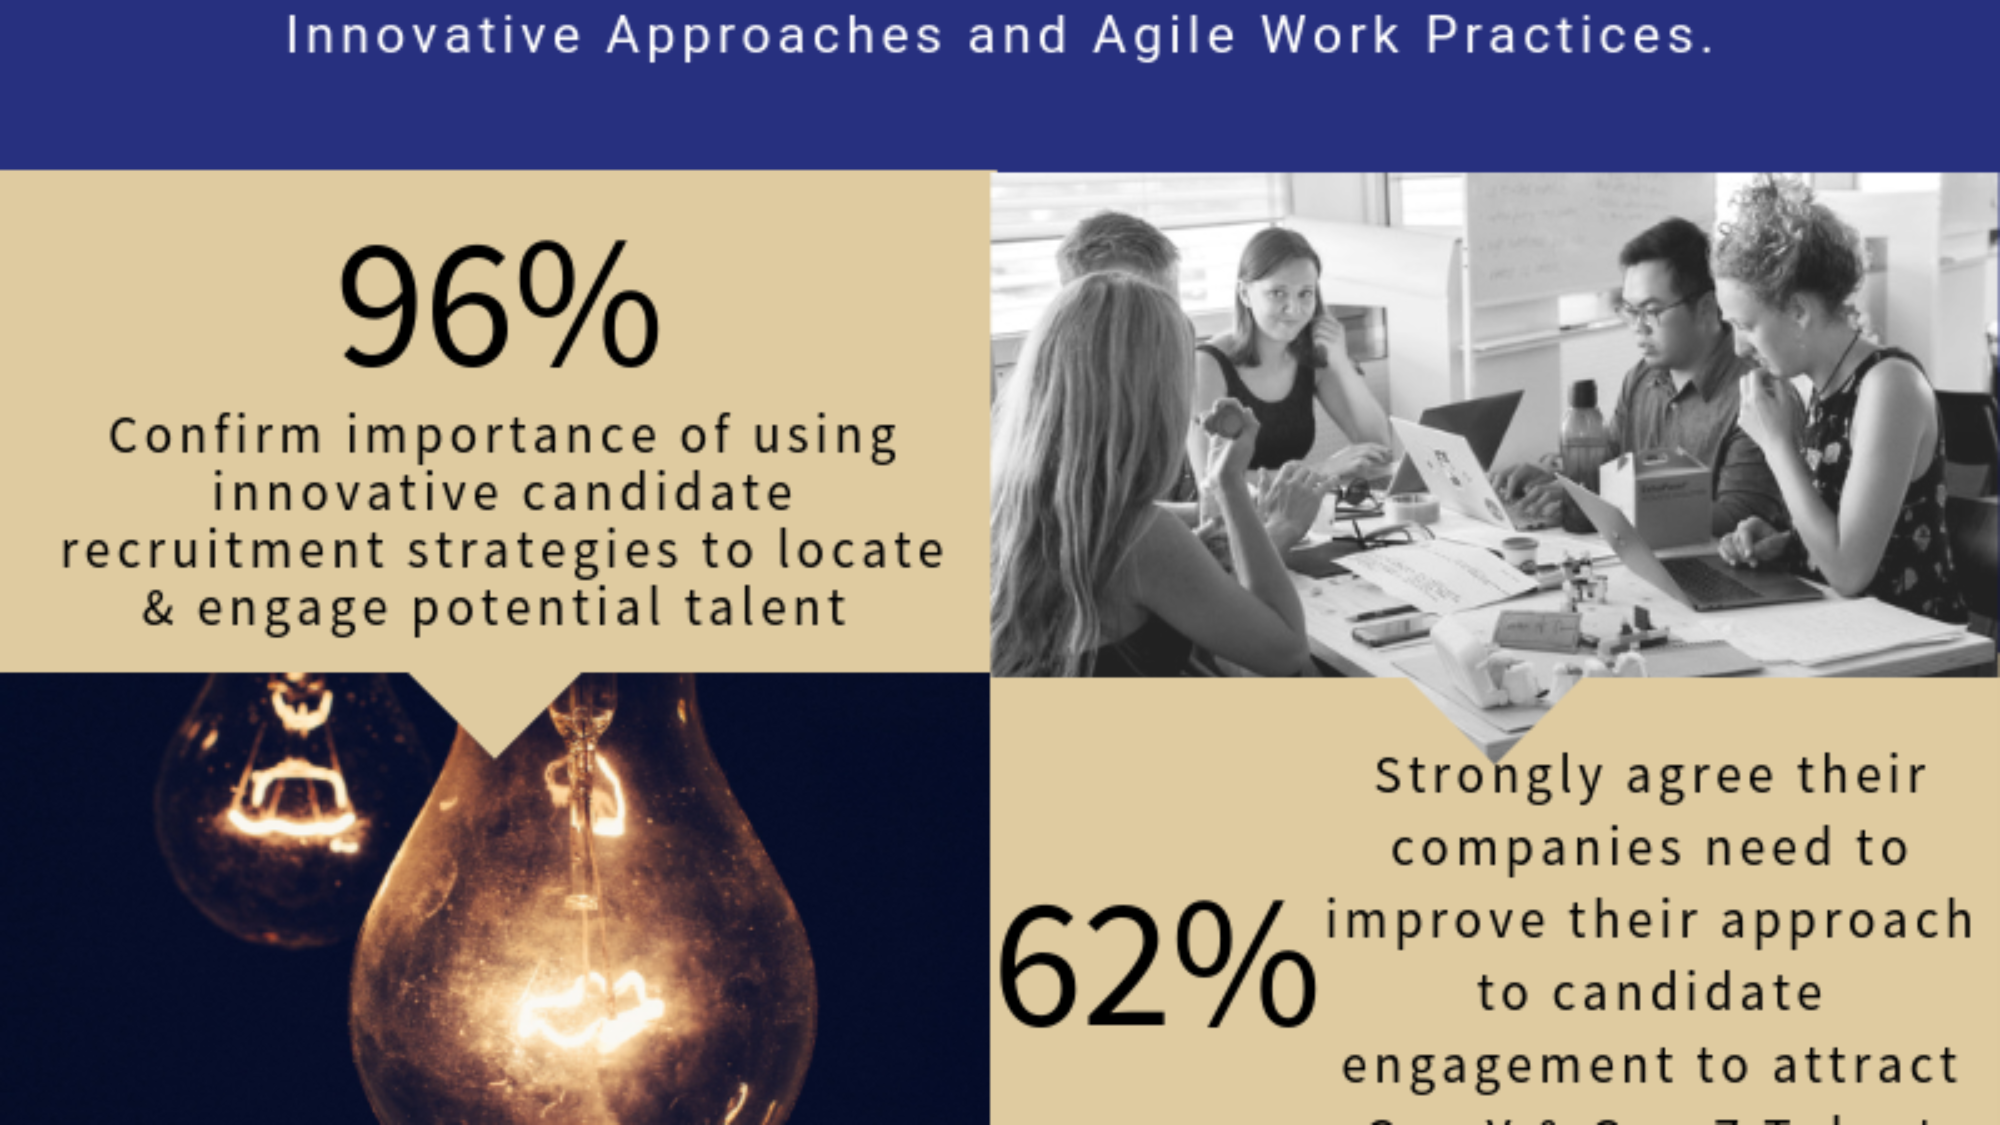 The-Rise-of-Agile-Work-Practices-in-Talent-Acquisition-2